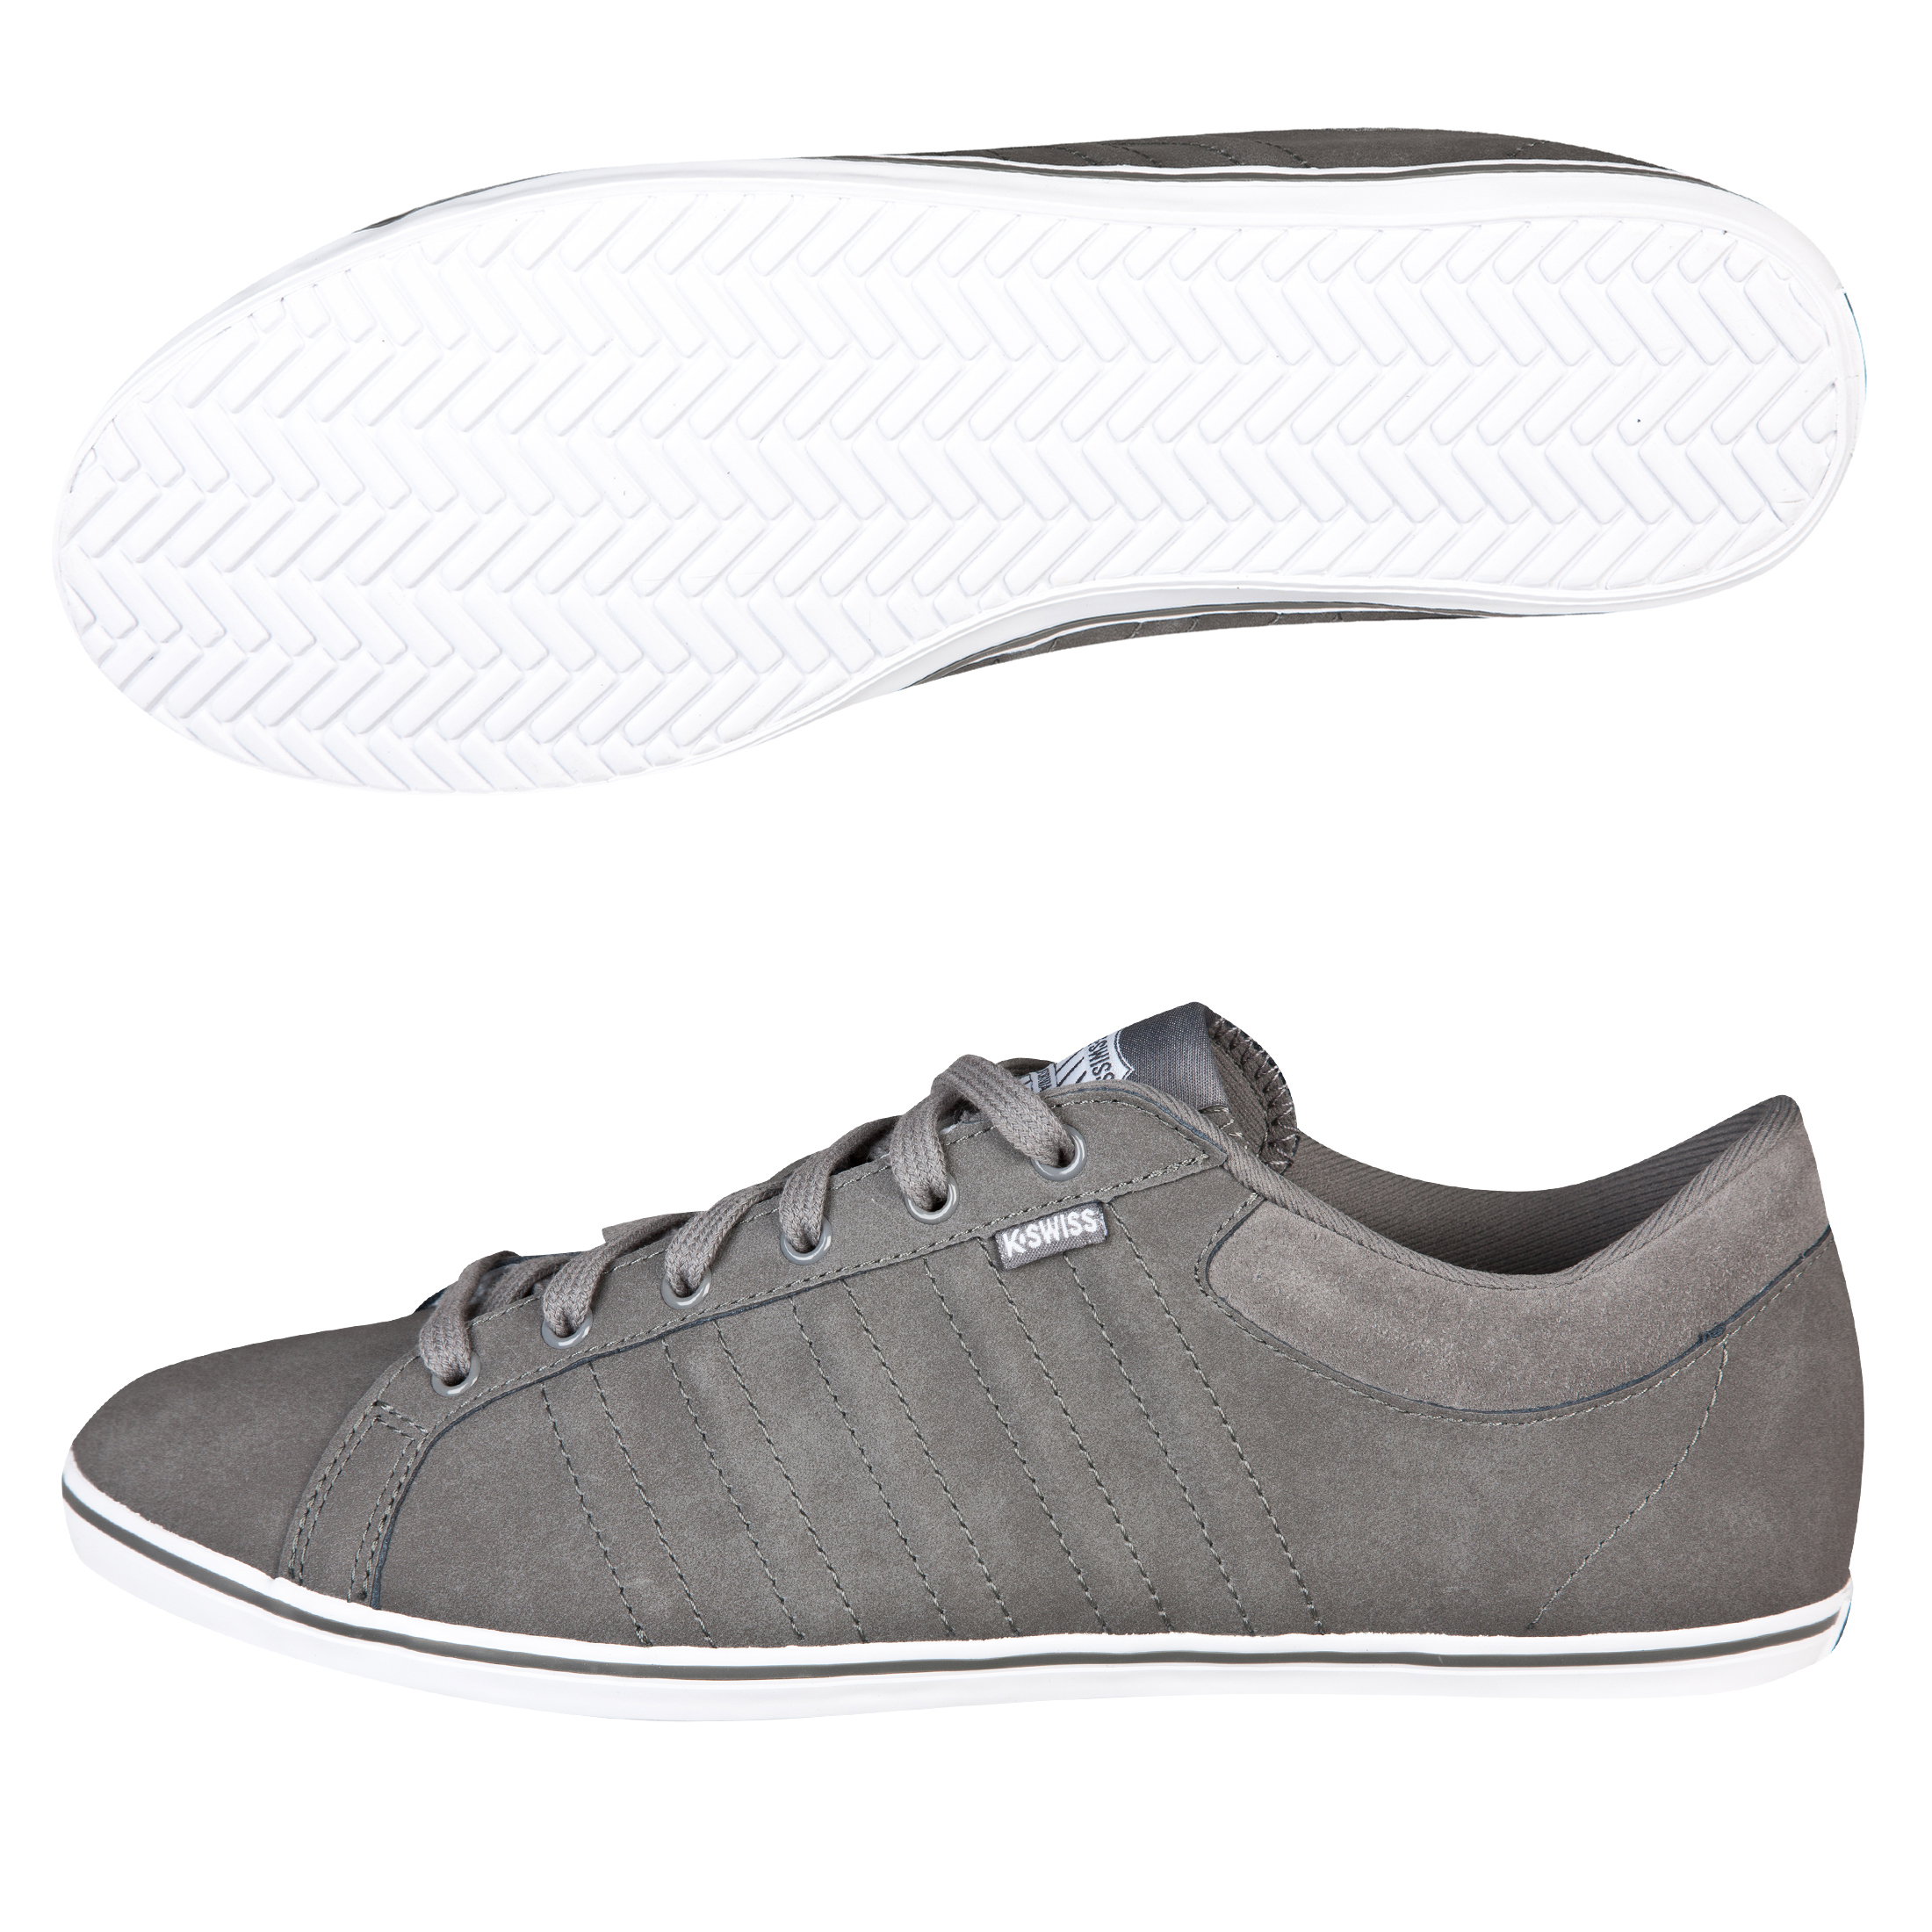 K-Swiss Hof IV Plimsol - Carbon Grey/White